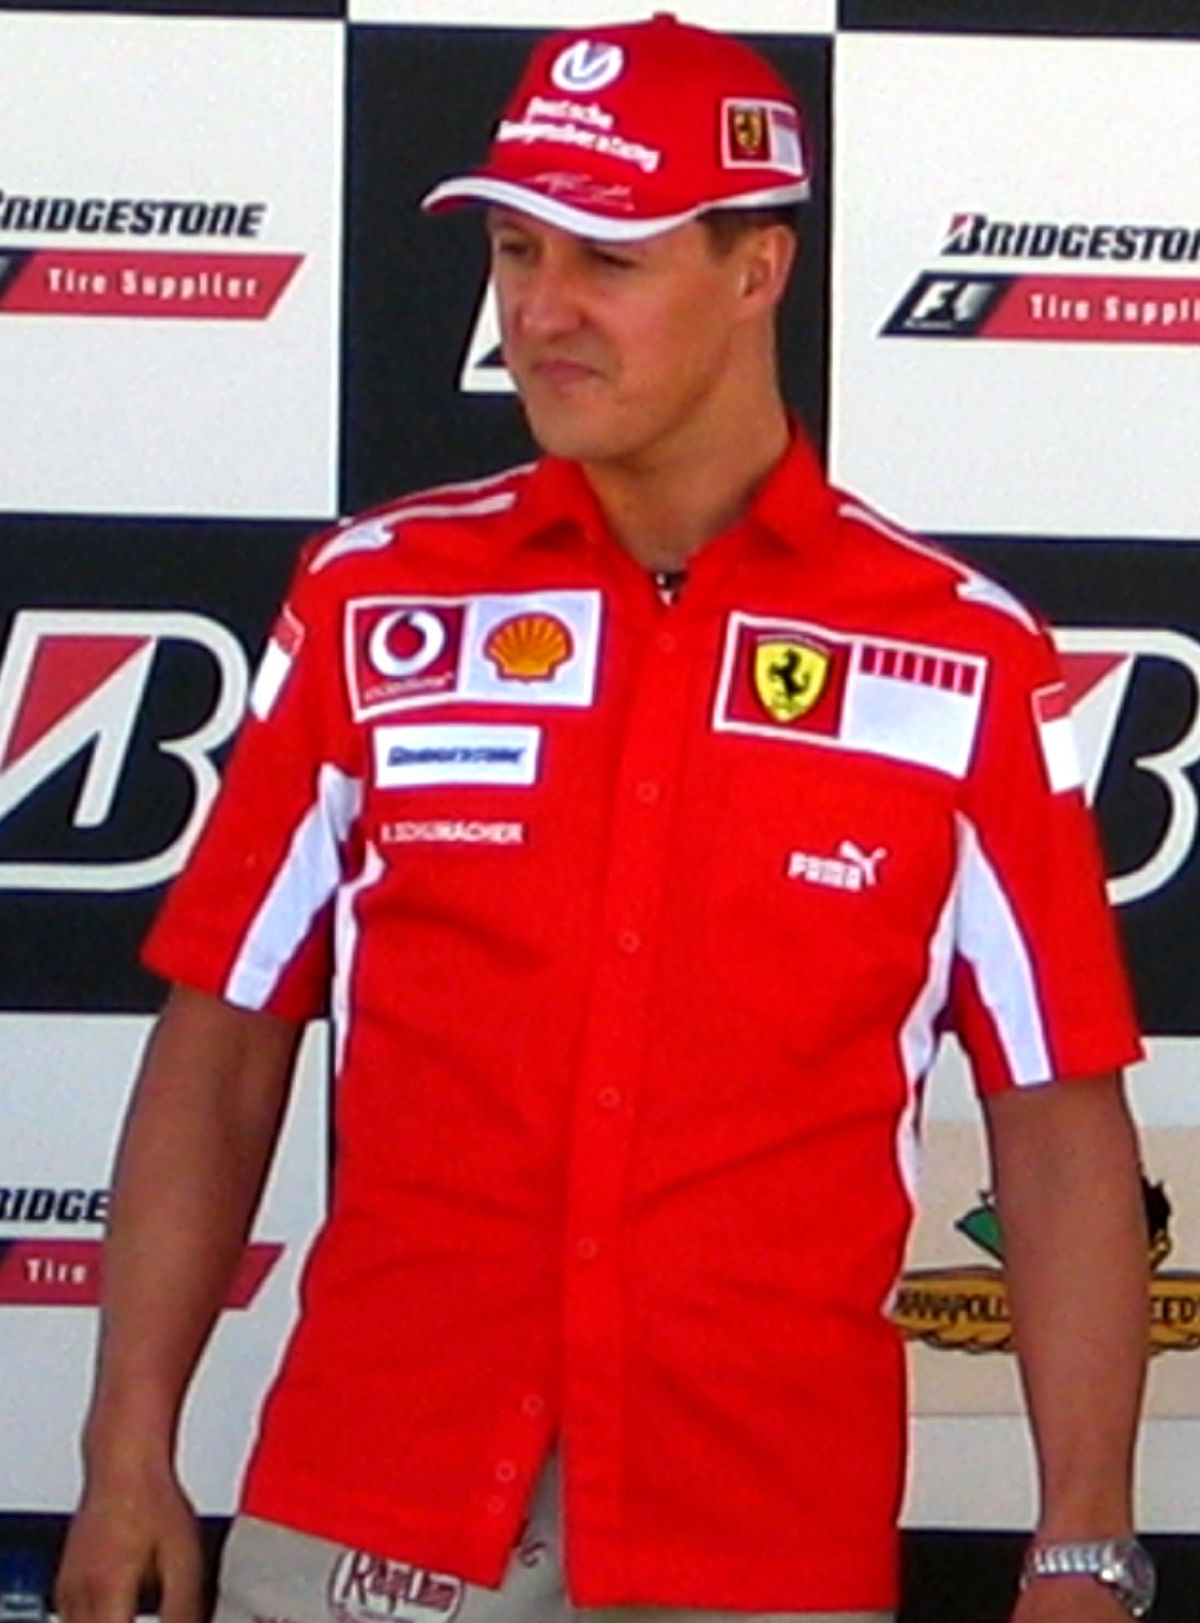 michael schumacher 1 day ago formula 1 legend driver michael schumacher suffered life-threatening injuries following a ski accident in the french alps over four years ago.